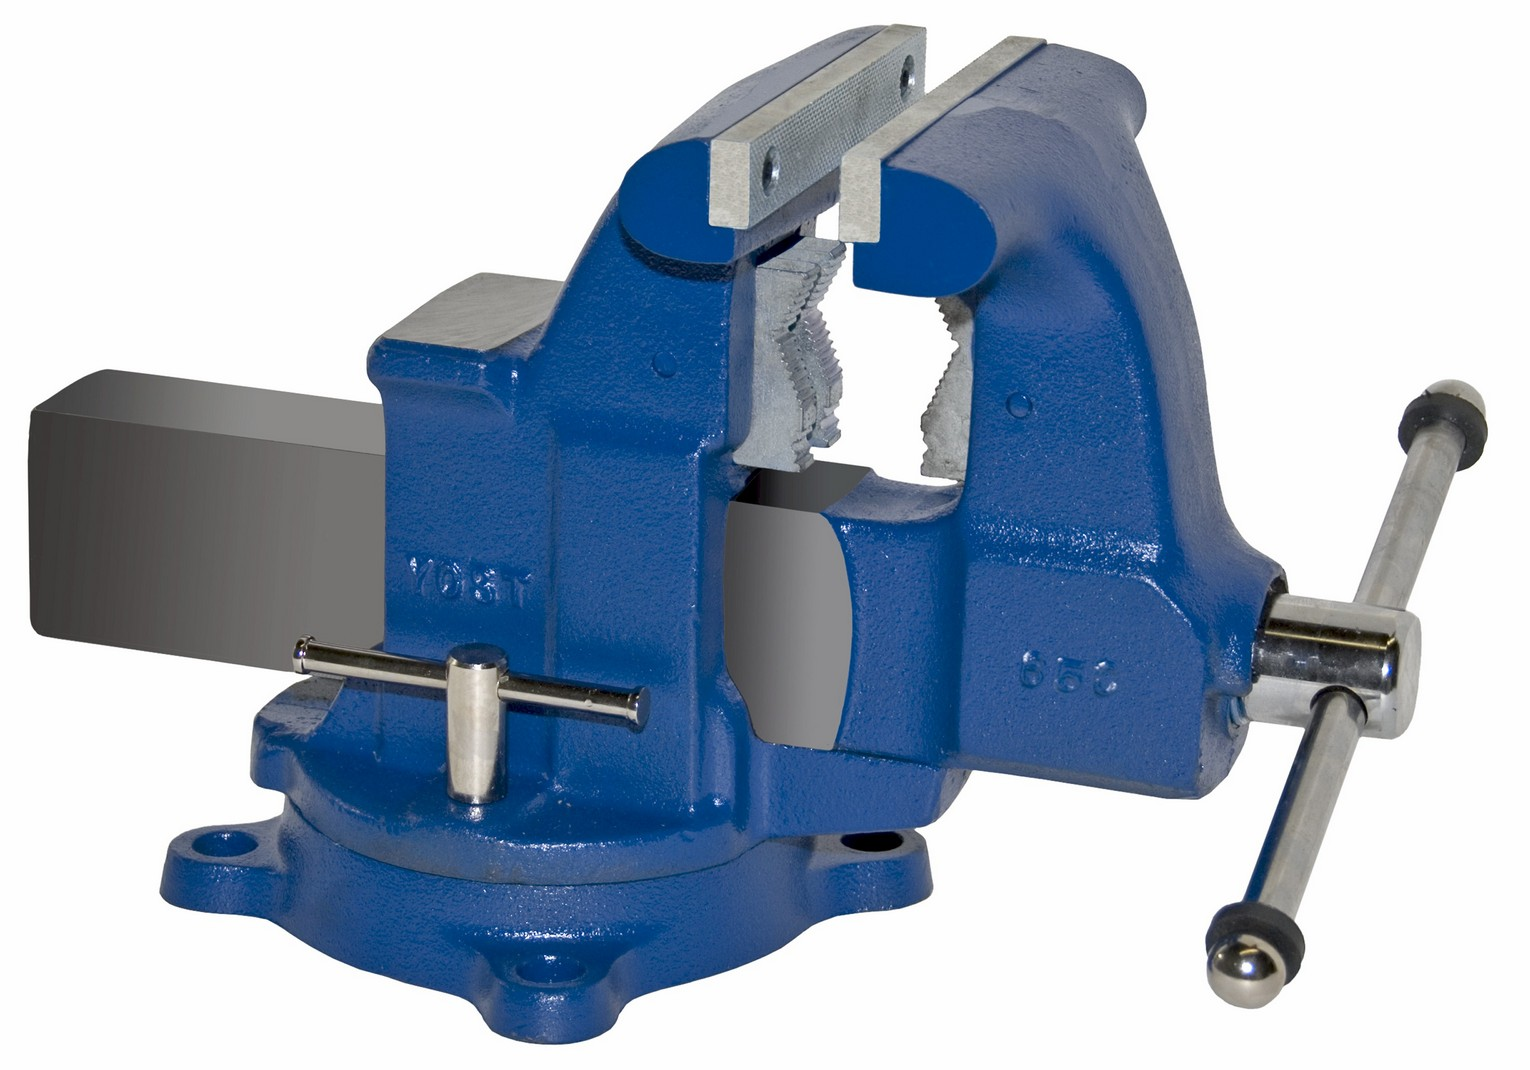 Yost Vises 65c 6 1 2 Tradesman Combination Pipe Bench Vise Swivel Base